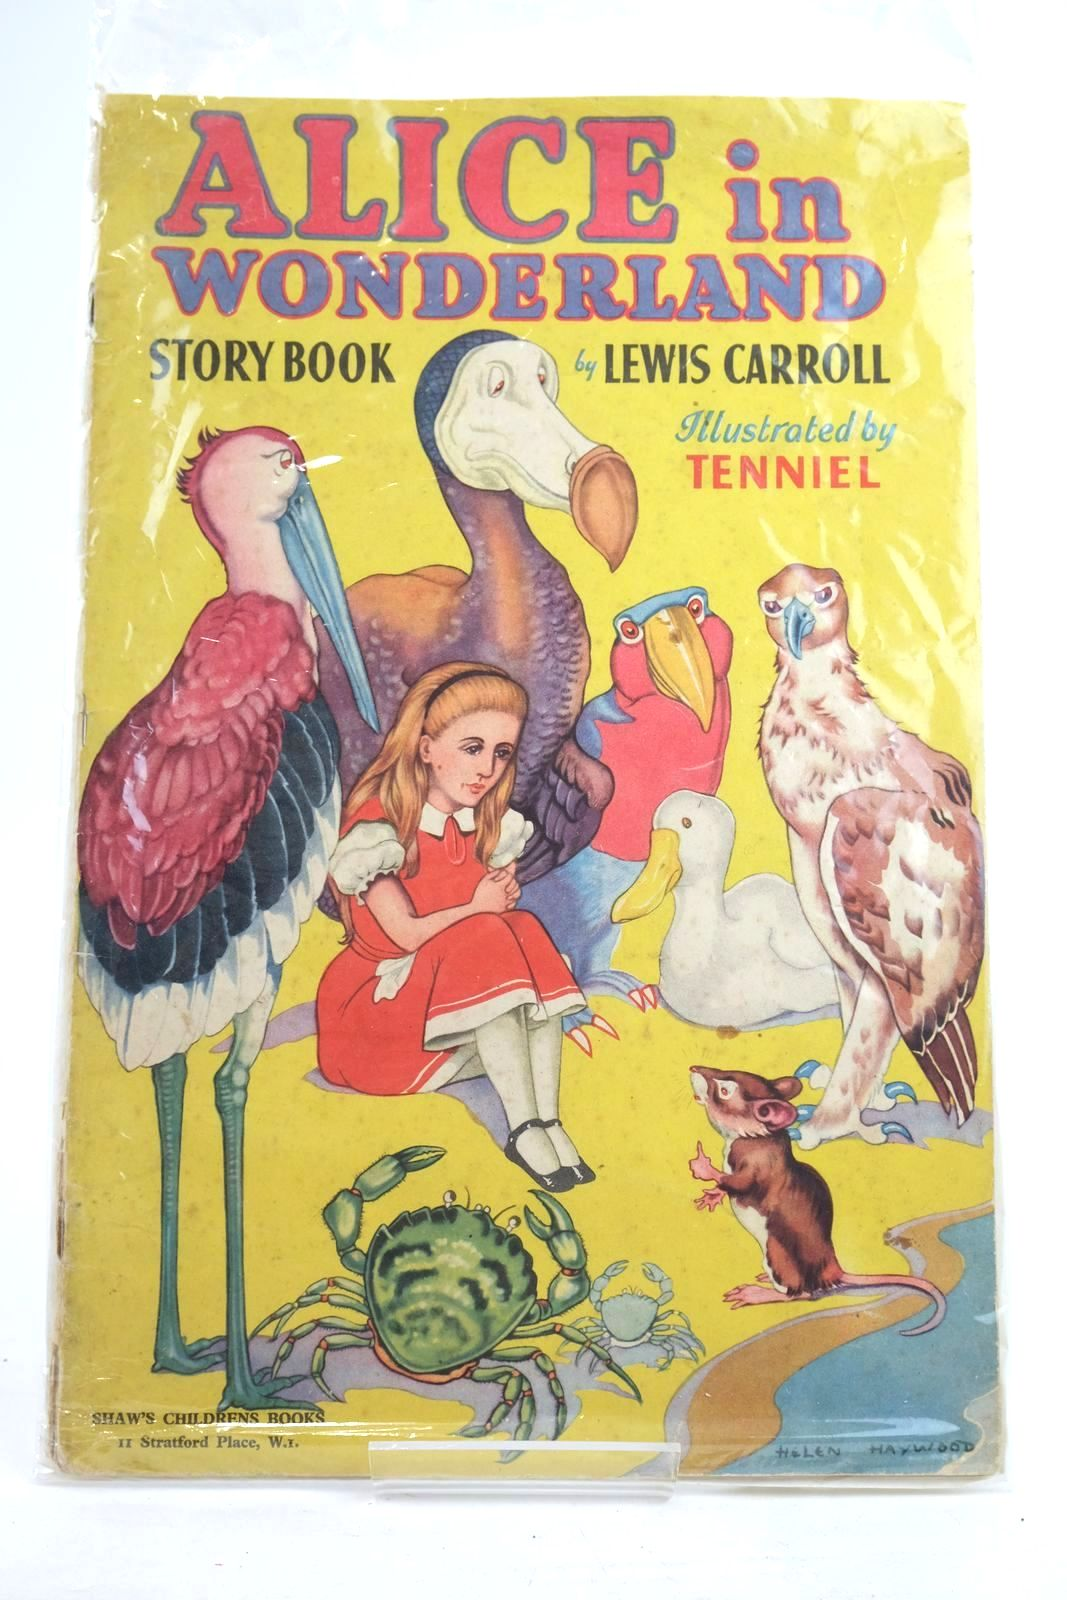 Photo of ALICE IN WONDERLAND STORY BOOK written by Carroll, Lewis illustrated by Tenniel, John Haywood, Helen published by Shaw's Children'S Books (STOCK CODE: 1320063)  for sale by Stella & Rose's Books